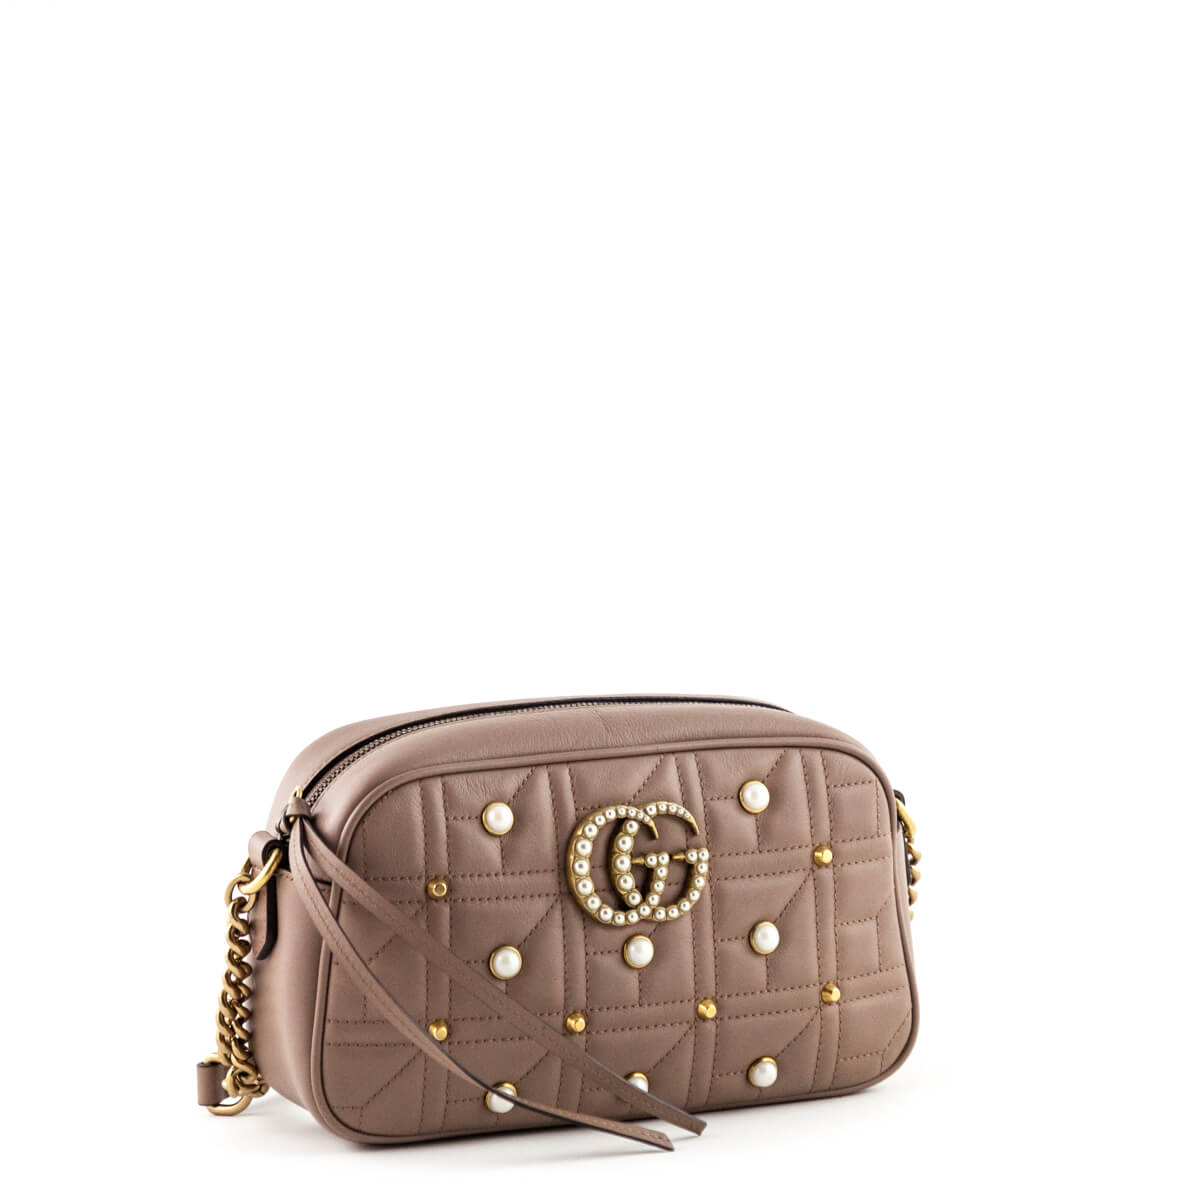 7bc7917d6606a6 ... Gucci Nude Calfskin Matelasse Small Pearl Studded GG Marmont - LOVE  that BAG - Preowned Authentic ...